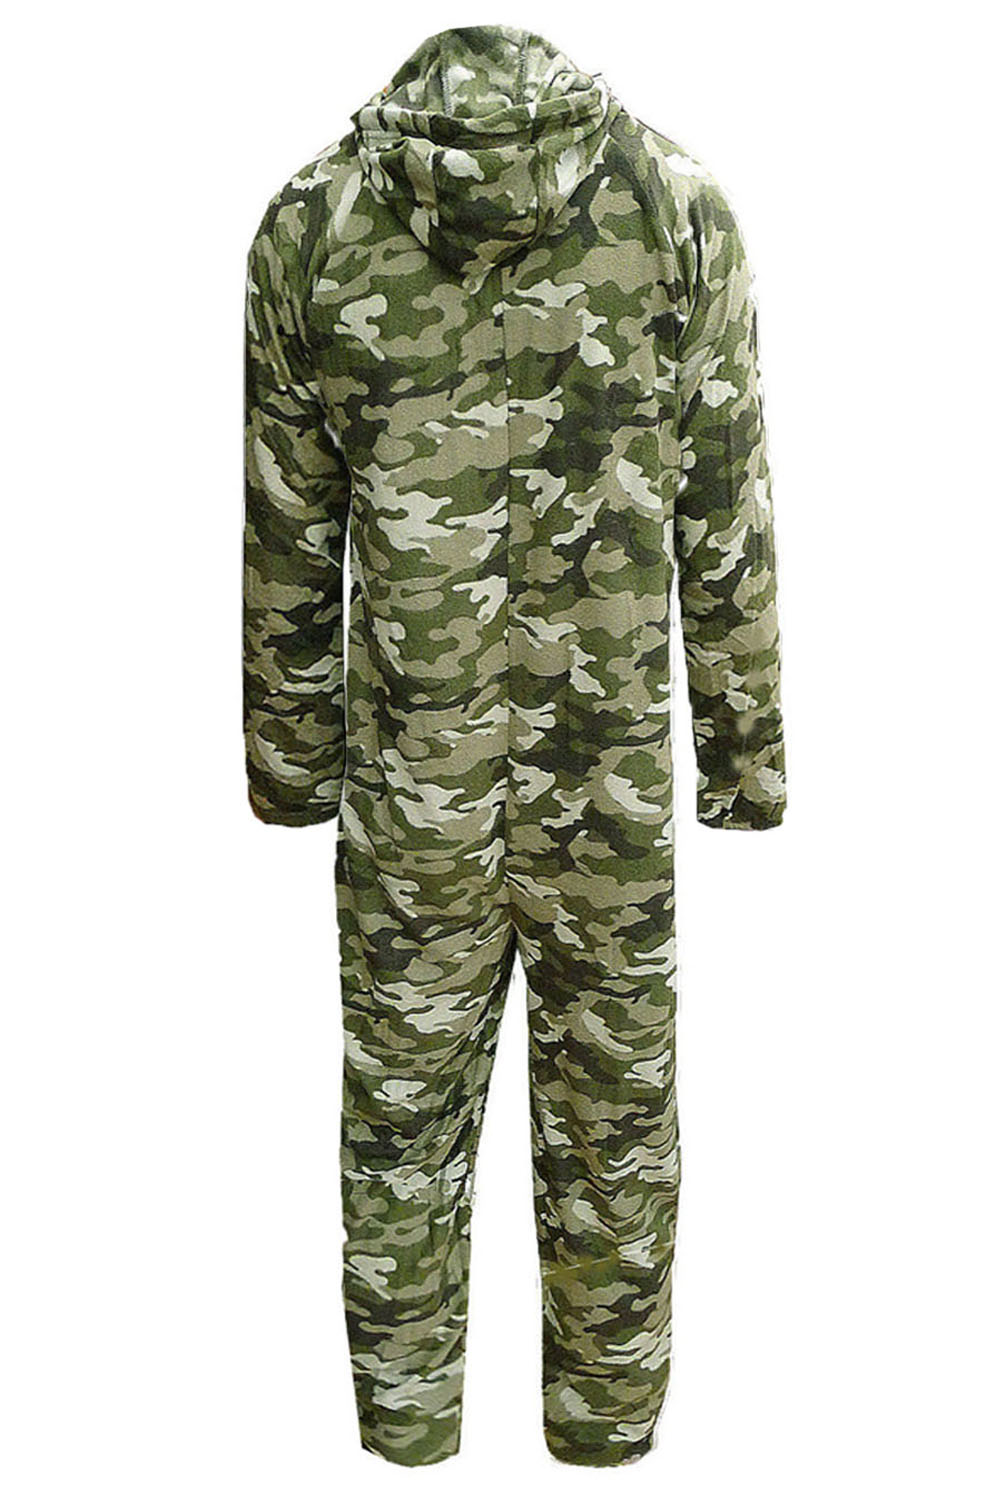 Mens Luxury Camouflage Sleepsuit Adults Hooded Soft Fleece All In One Pyjamas